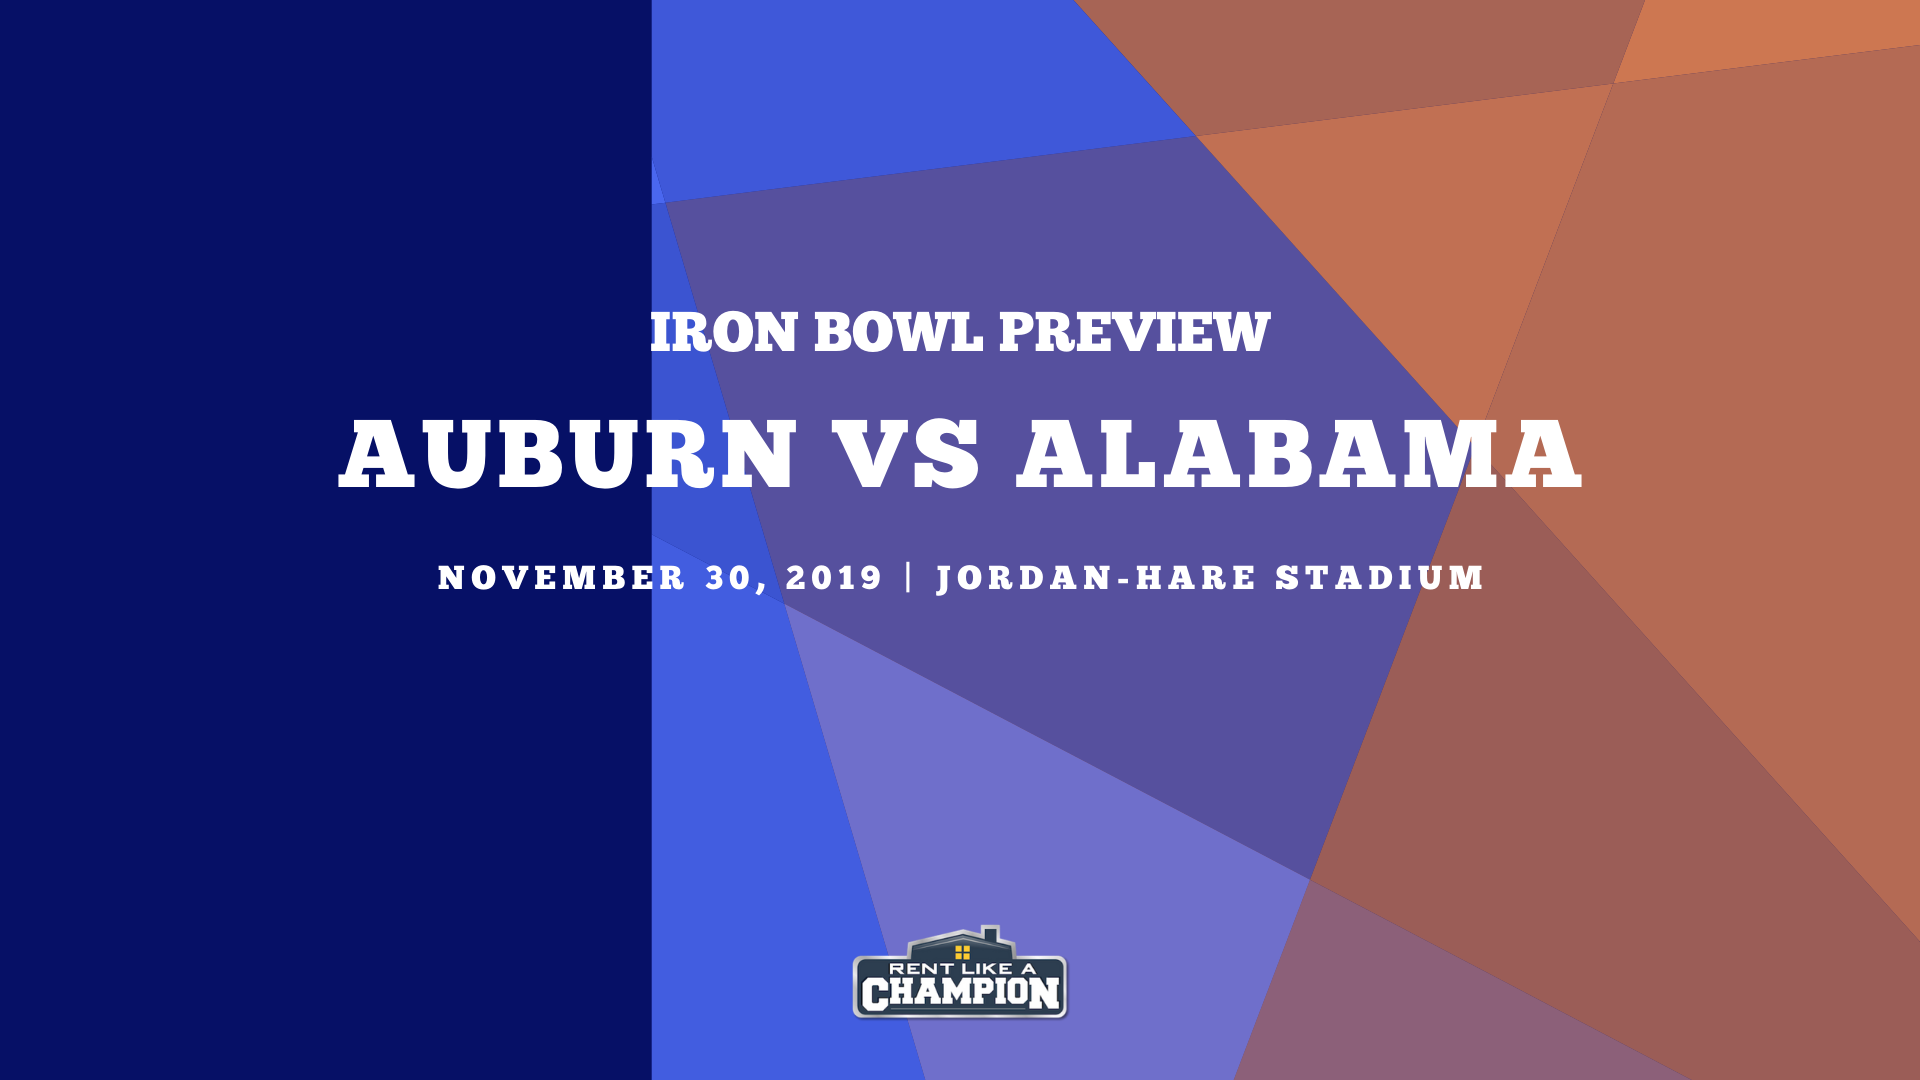 Auburn vs. Alabama: Preview, keys to the game, and predictions